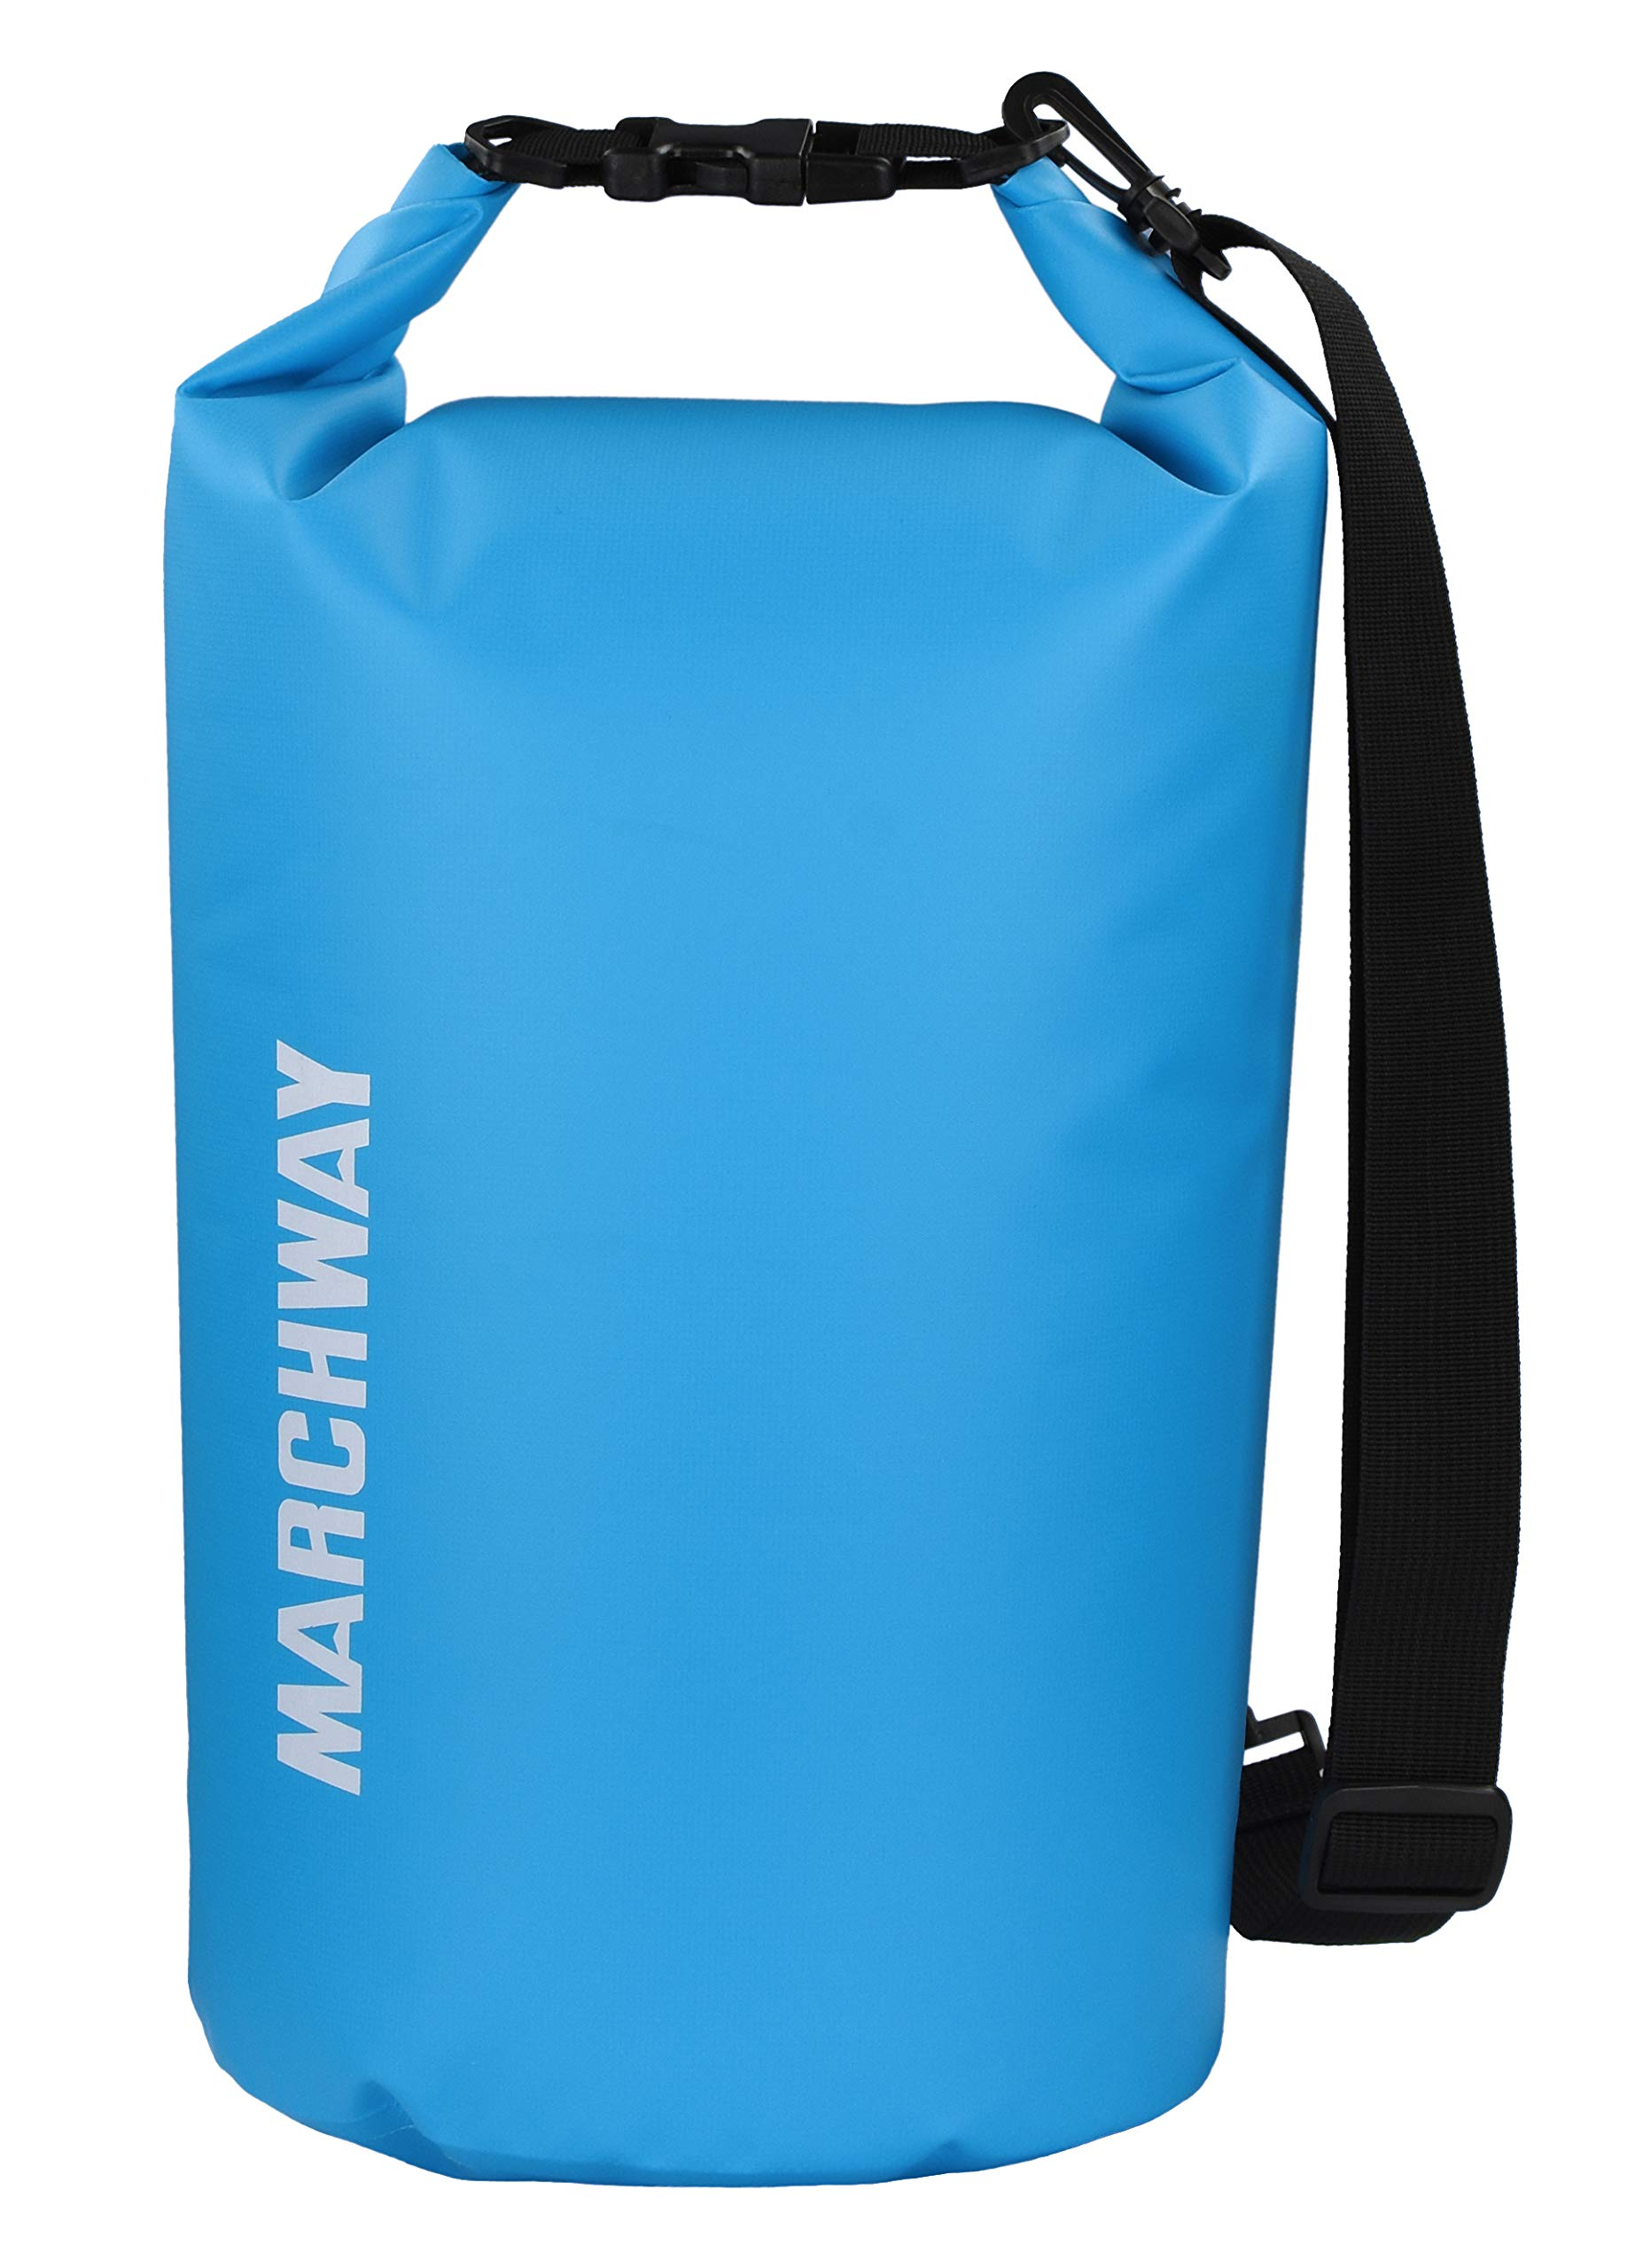 MARCHWAY Floating Waterproof Dry Bag 5L/10L/20L/30L, Roll Top Sack Keeps Gear Dry for Kayaking, Rafting, Boating, Swimming, Camping, Hiking, Beach, Fishing (Light Blue, 5L) by MARCHWAY